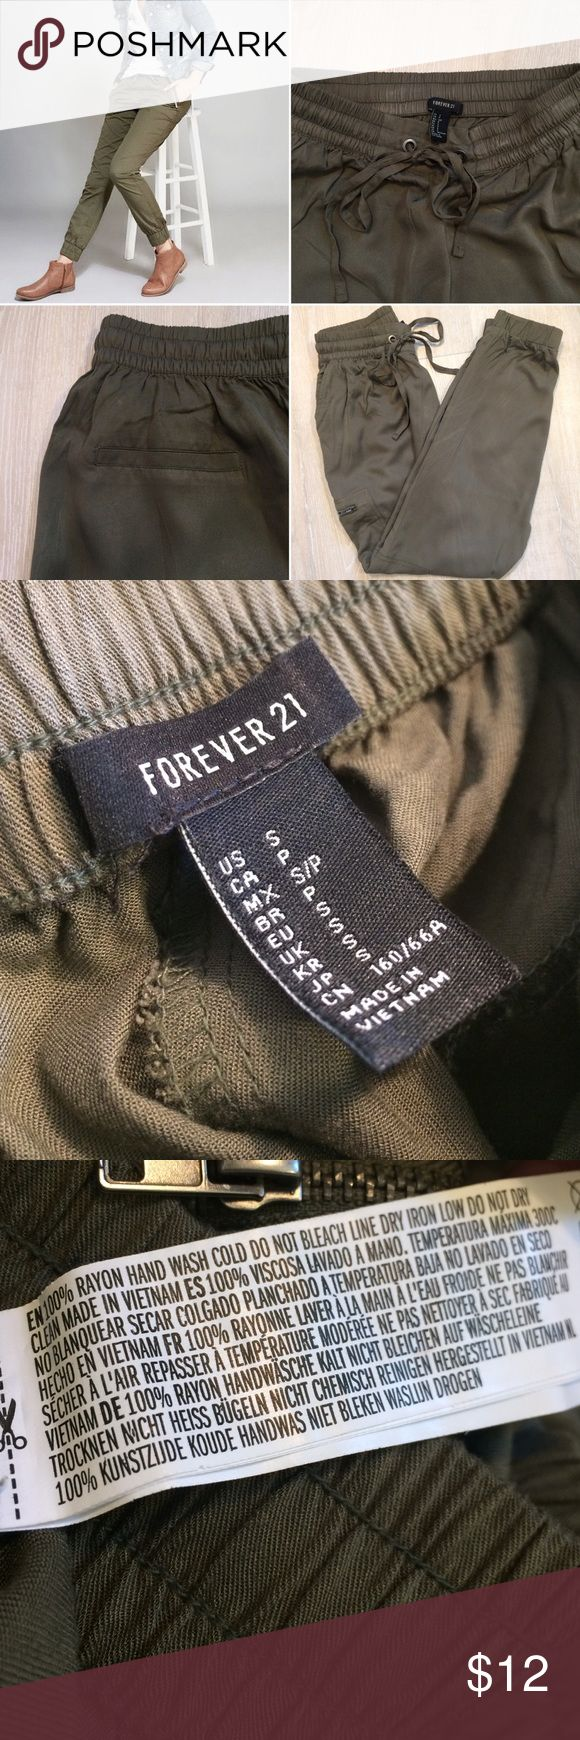 F21 Olive Green Joggers With Zipper Pockets Size women's small (2-4) | Features: elasticized waist drawstring, elasticized ankles, double hand pockets, double zippered leg pockets, illusional back pockets | Great condition, hardly worn | PRICE FIRM - Bundle for discounts (: Forever 21 Pants Track Pants & Joggers